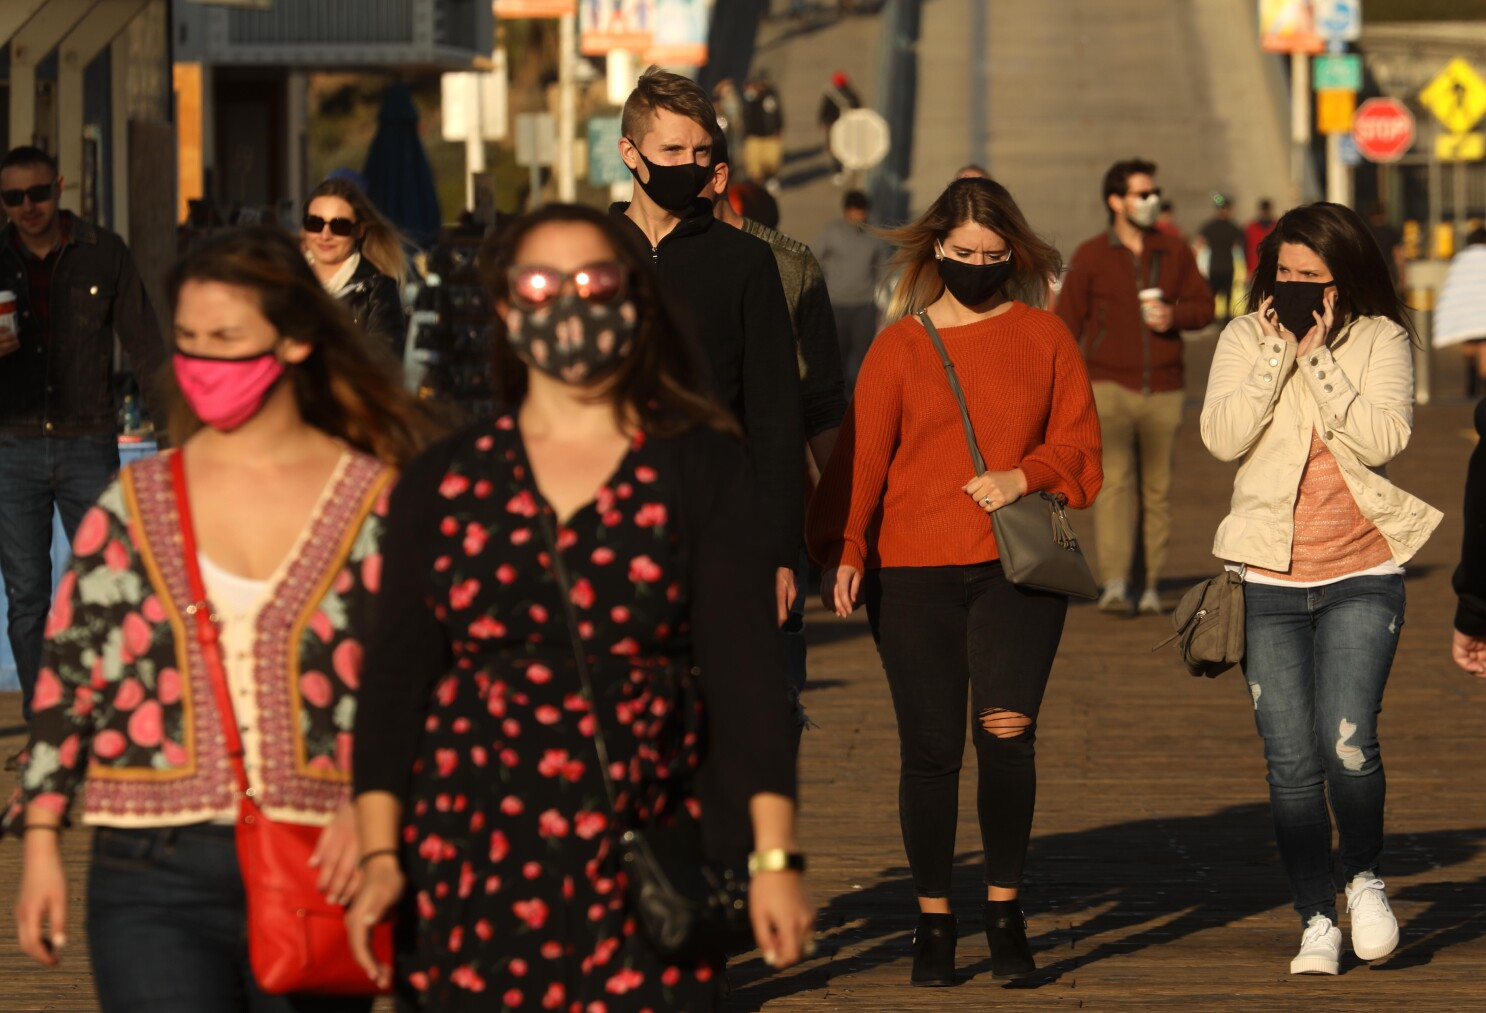 Thanksgiving Threatens New Super Spreading Covid 19 Dangers Los Angeles Times